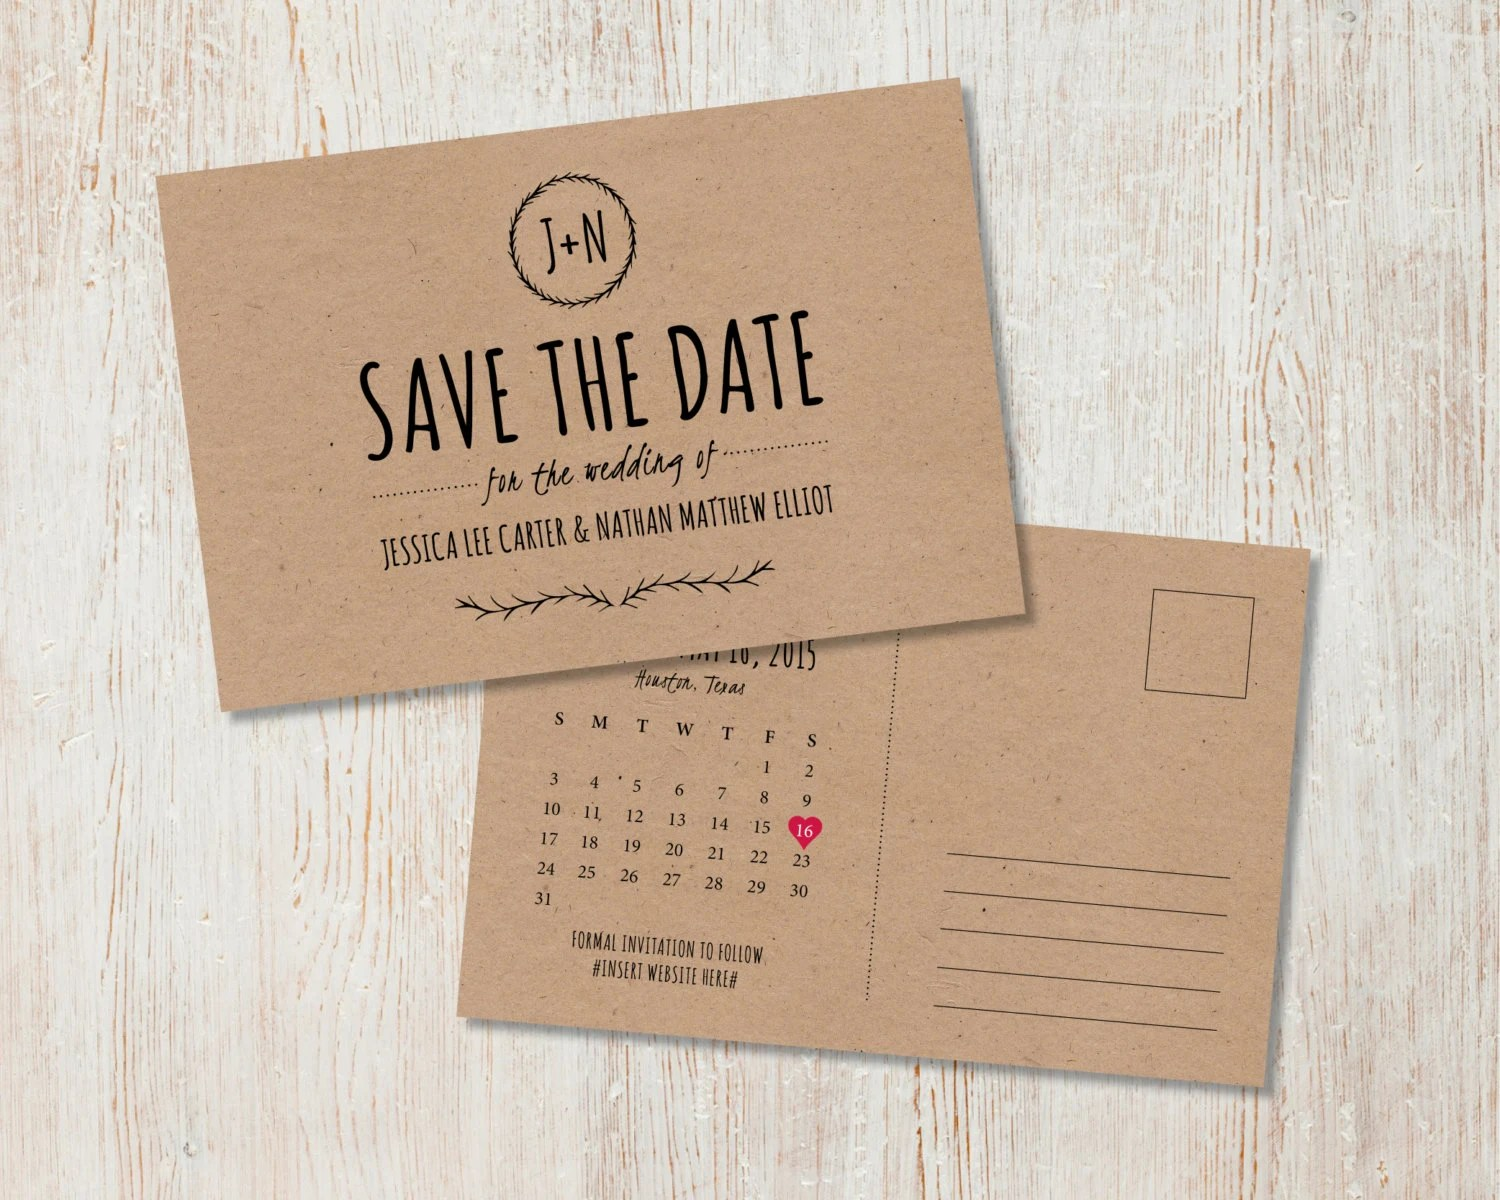 Wedding Invitations And Save The Dates Packages 029 - Wedding Invitations And Save The Dates Packages